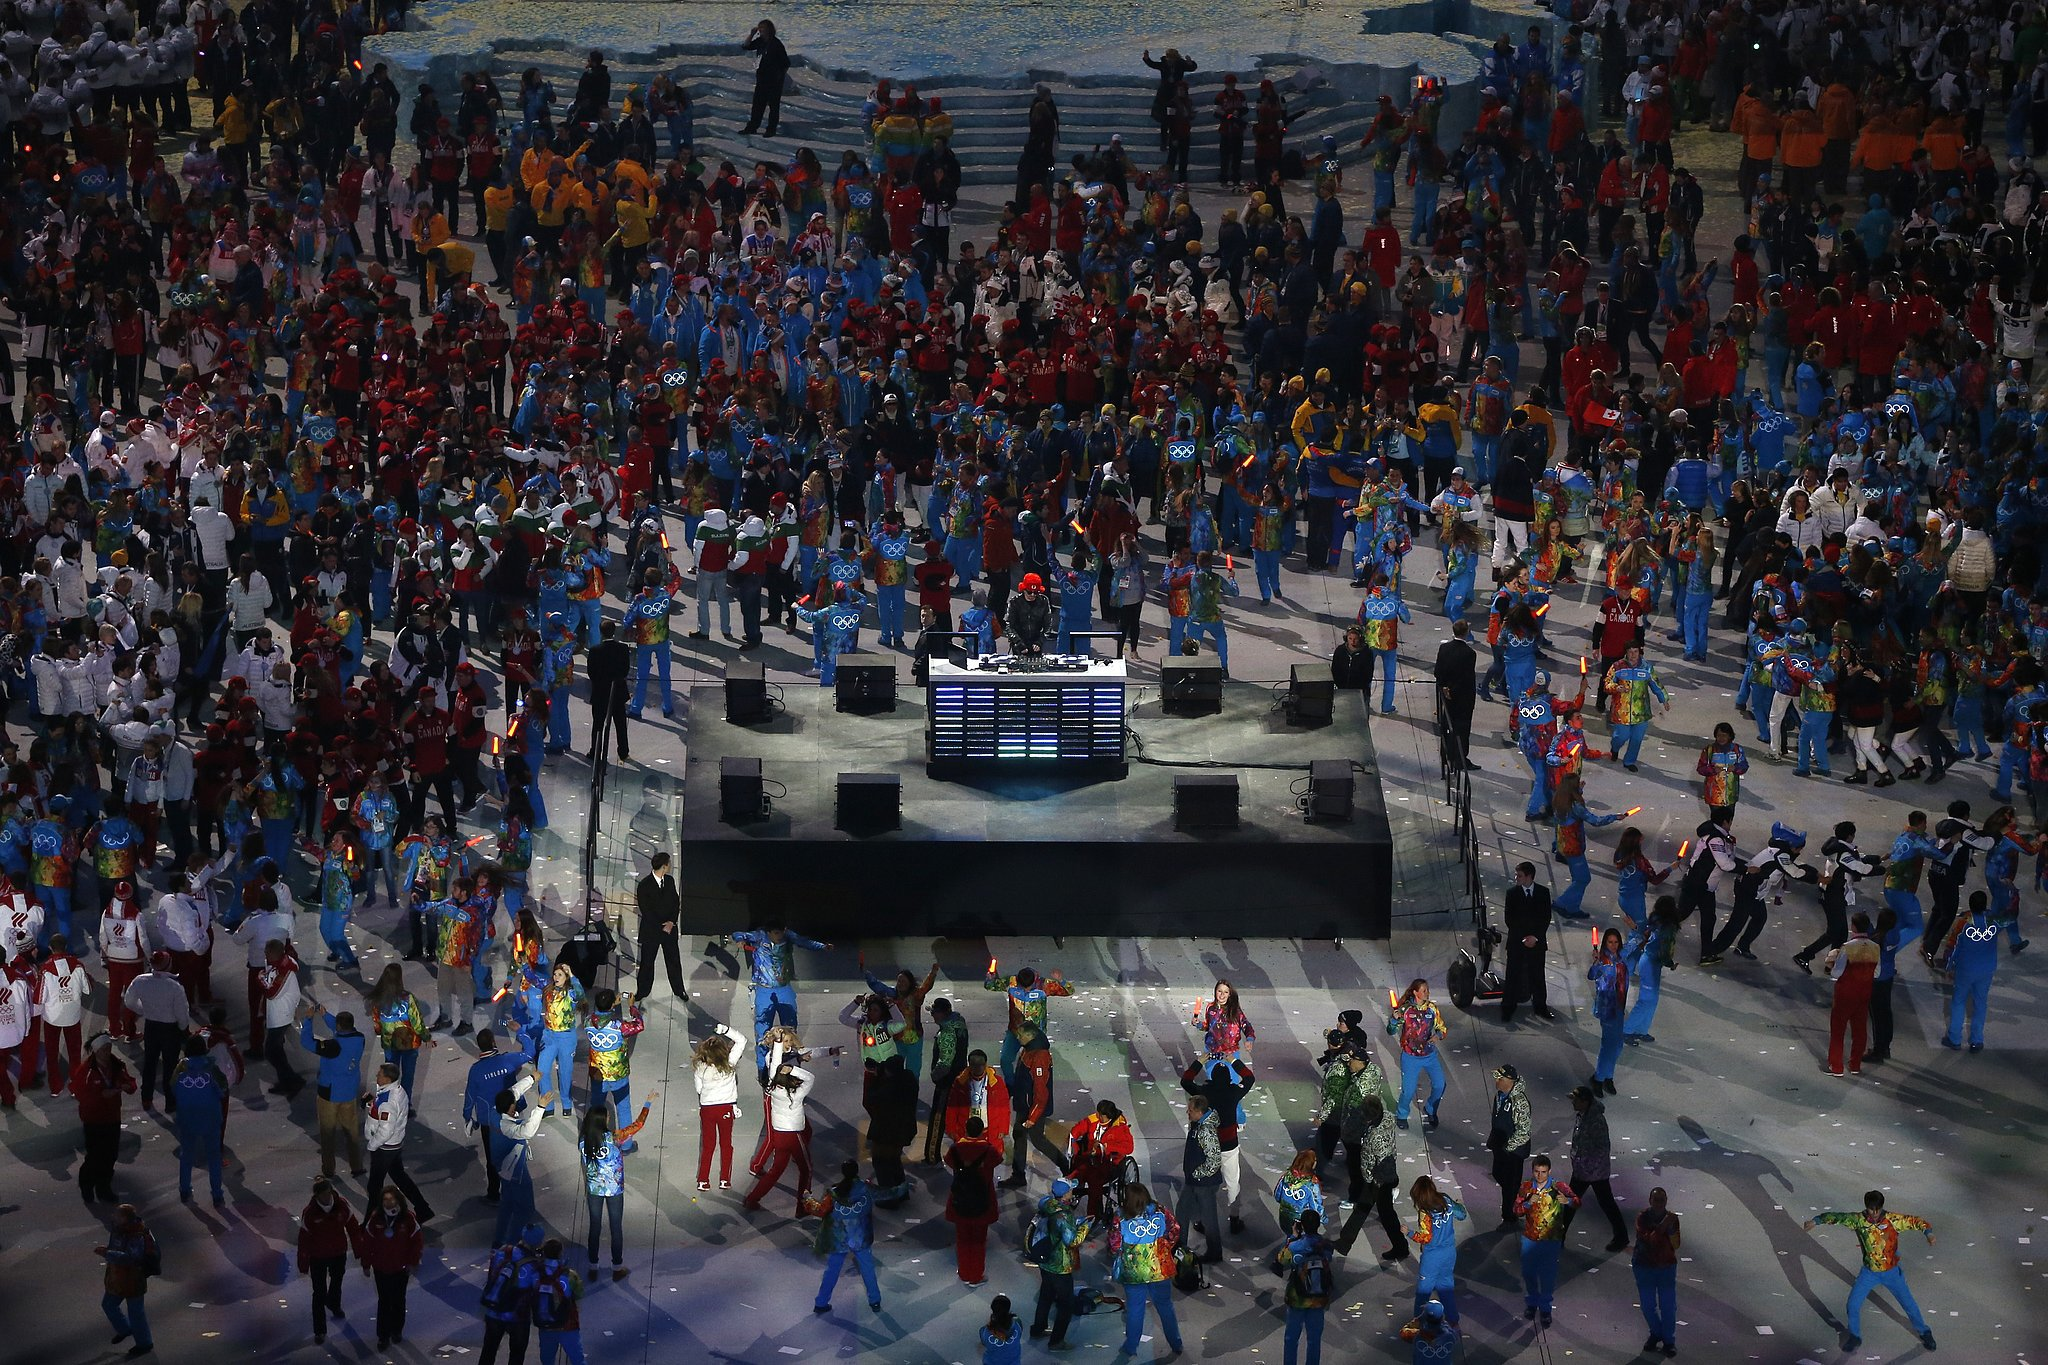 Olympic athletes danced following the Sochi closing ceremony.